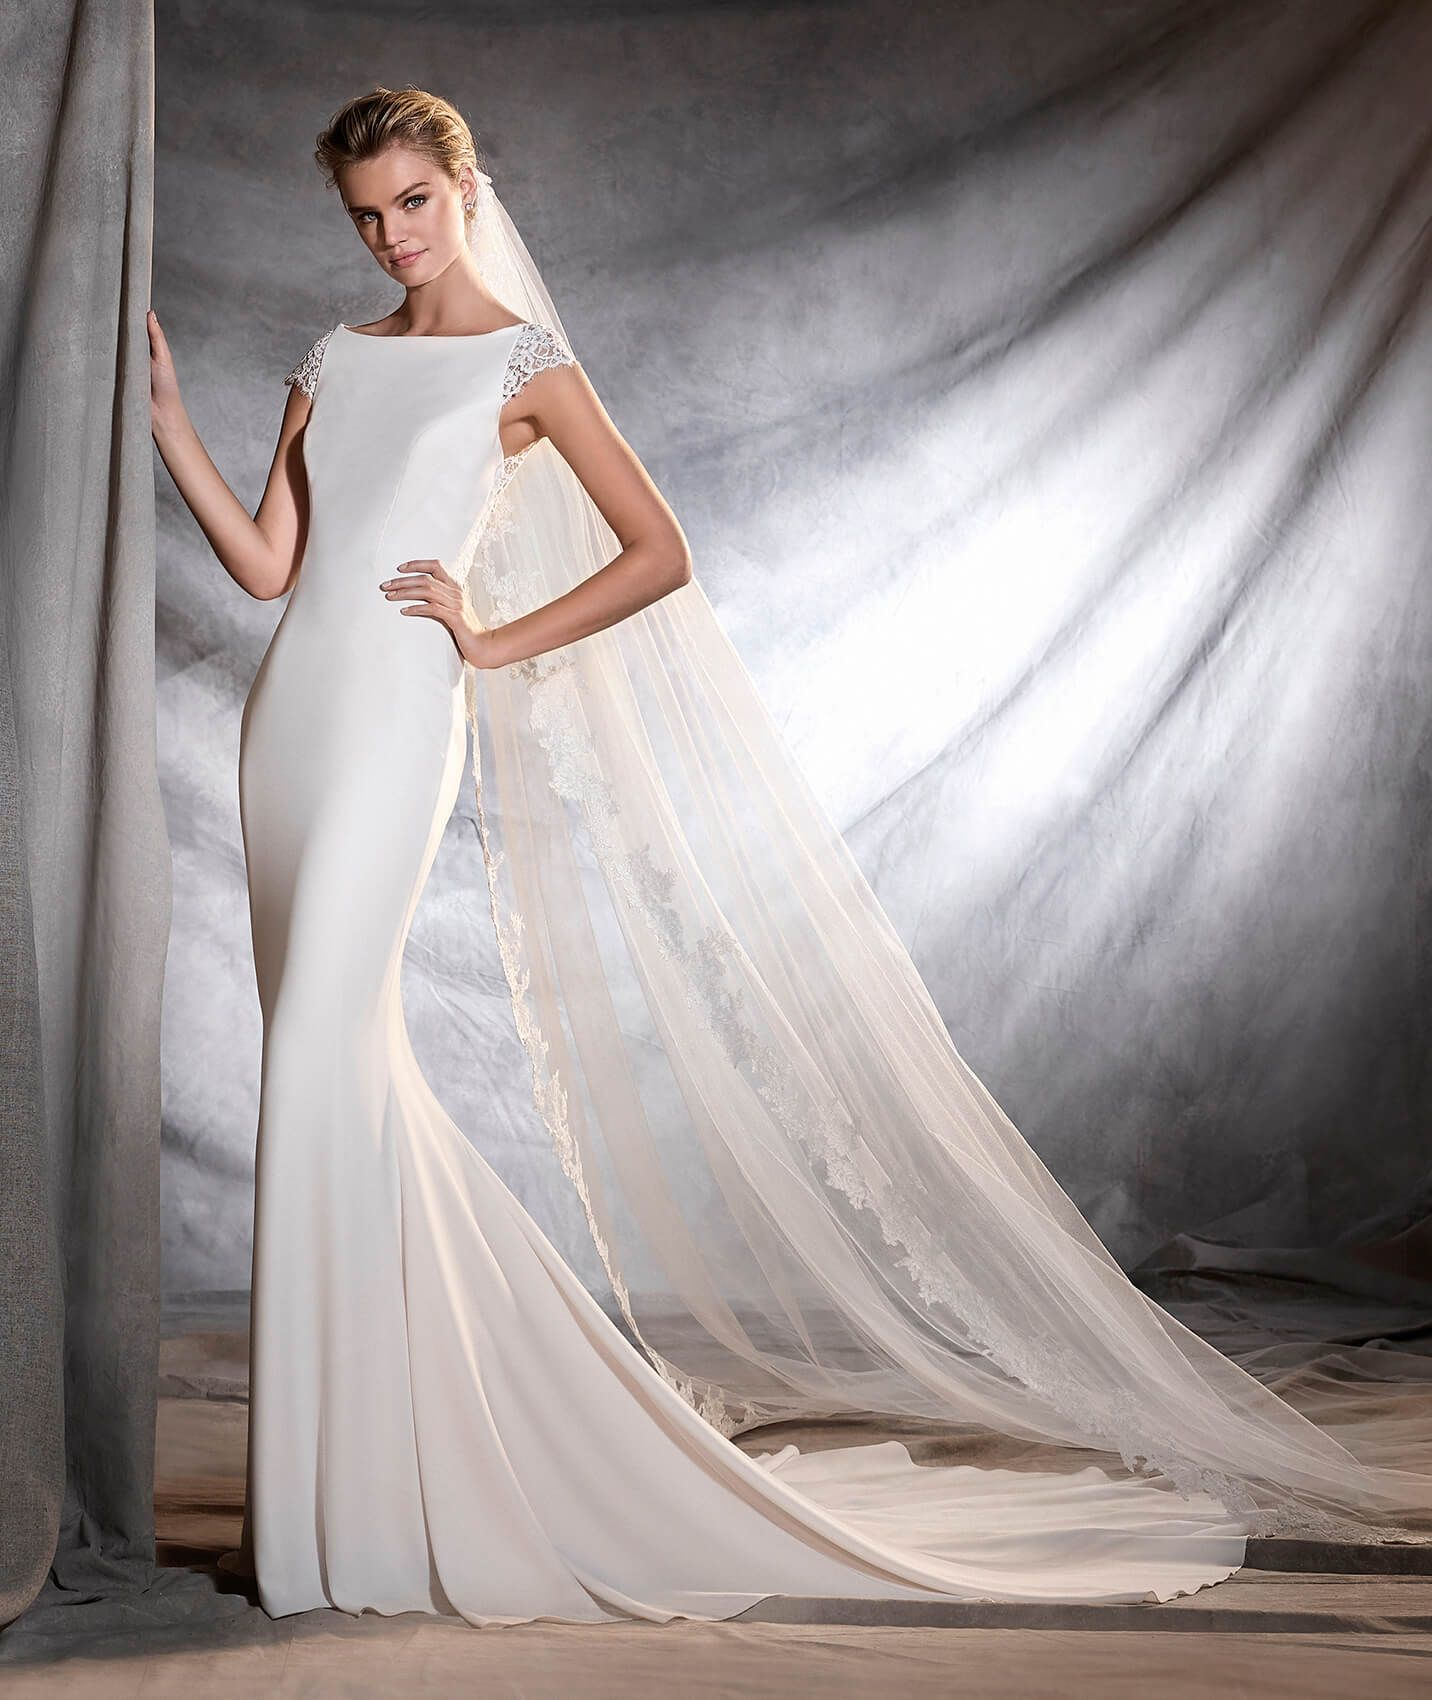 OLBIA - Wedding dress in tulle, crepe and lace | Once upon a ...